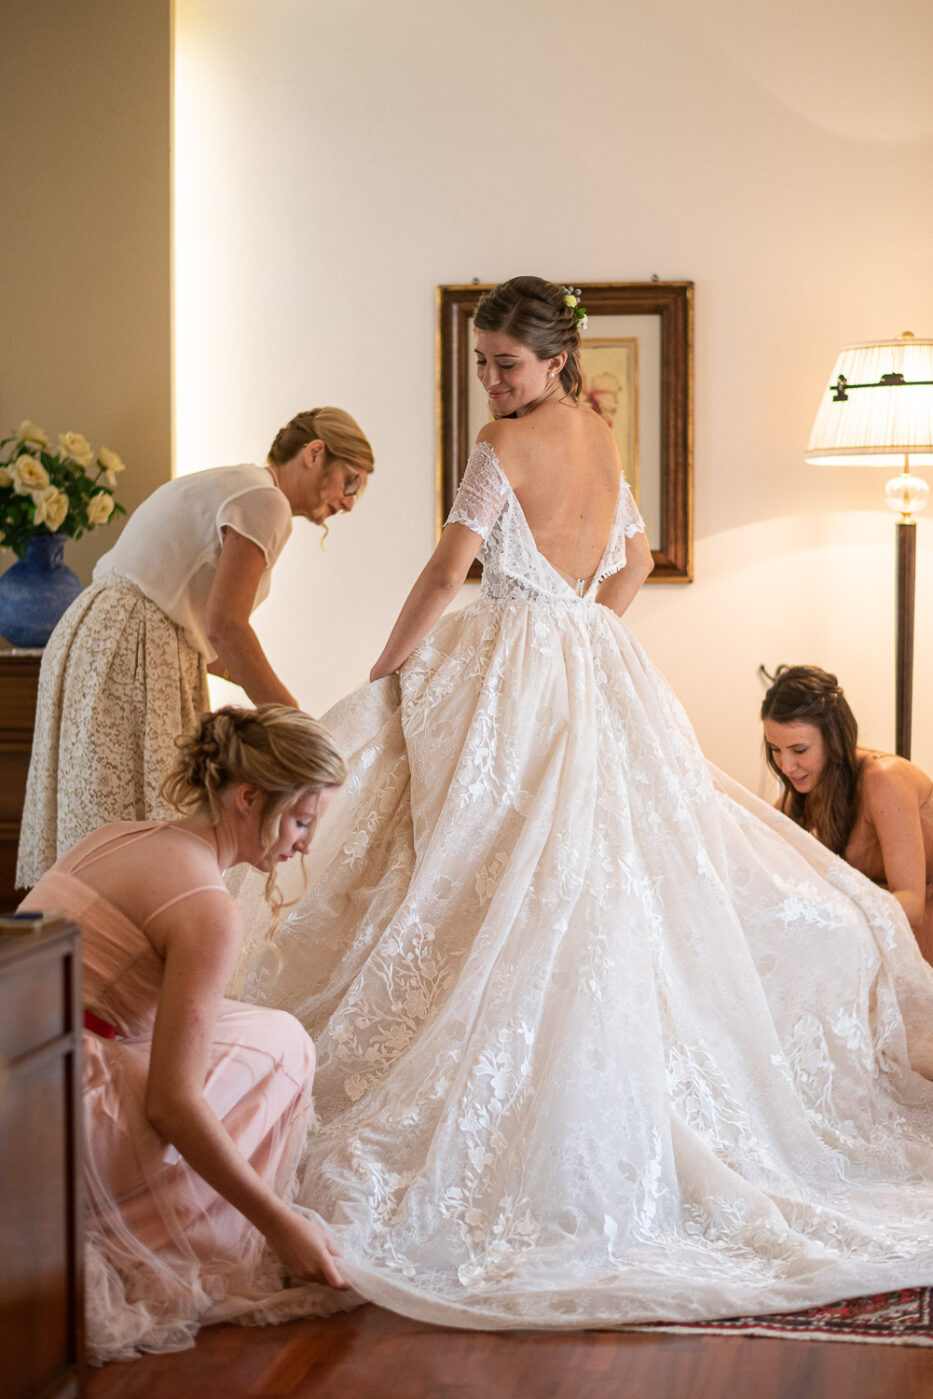 Candid moment of a bride looking behind over her shoulder with her dress open while being helped by her bridesmaids at Ristorante il Castello in Vicenza Veneto Italy by luxury wedding photographer Francesco Bognin